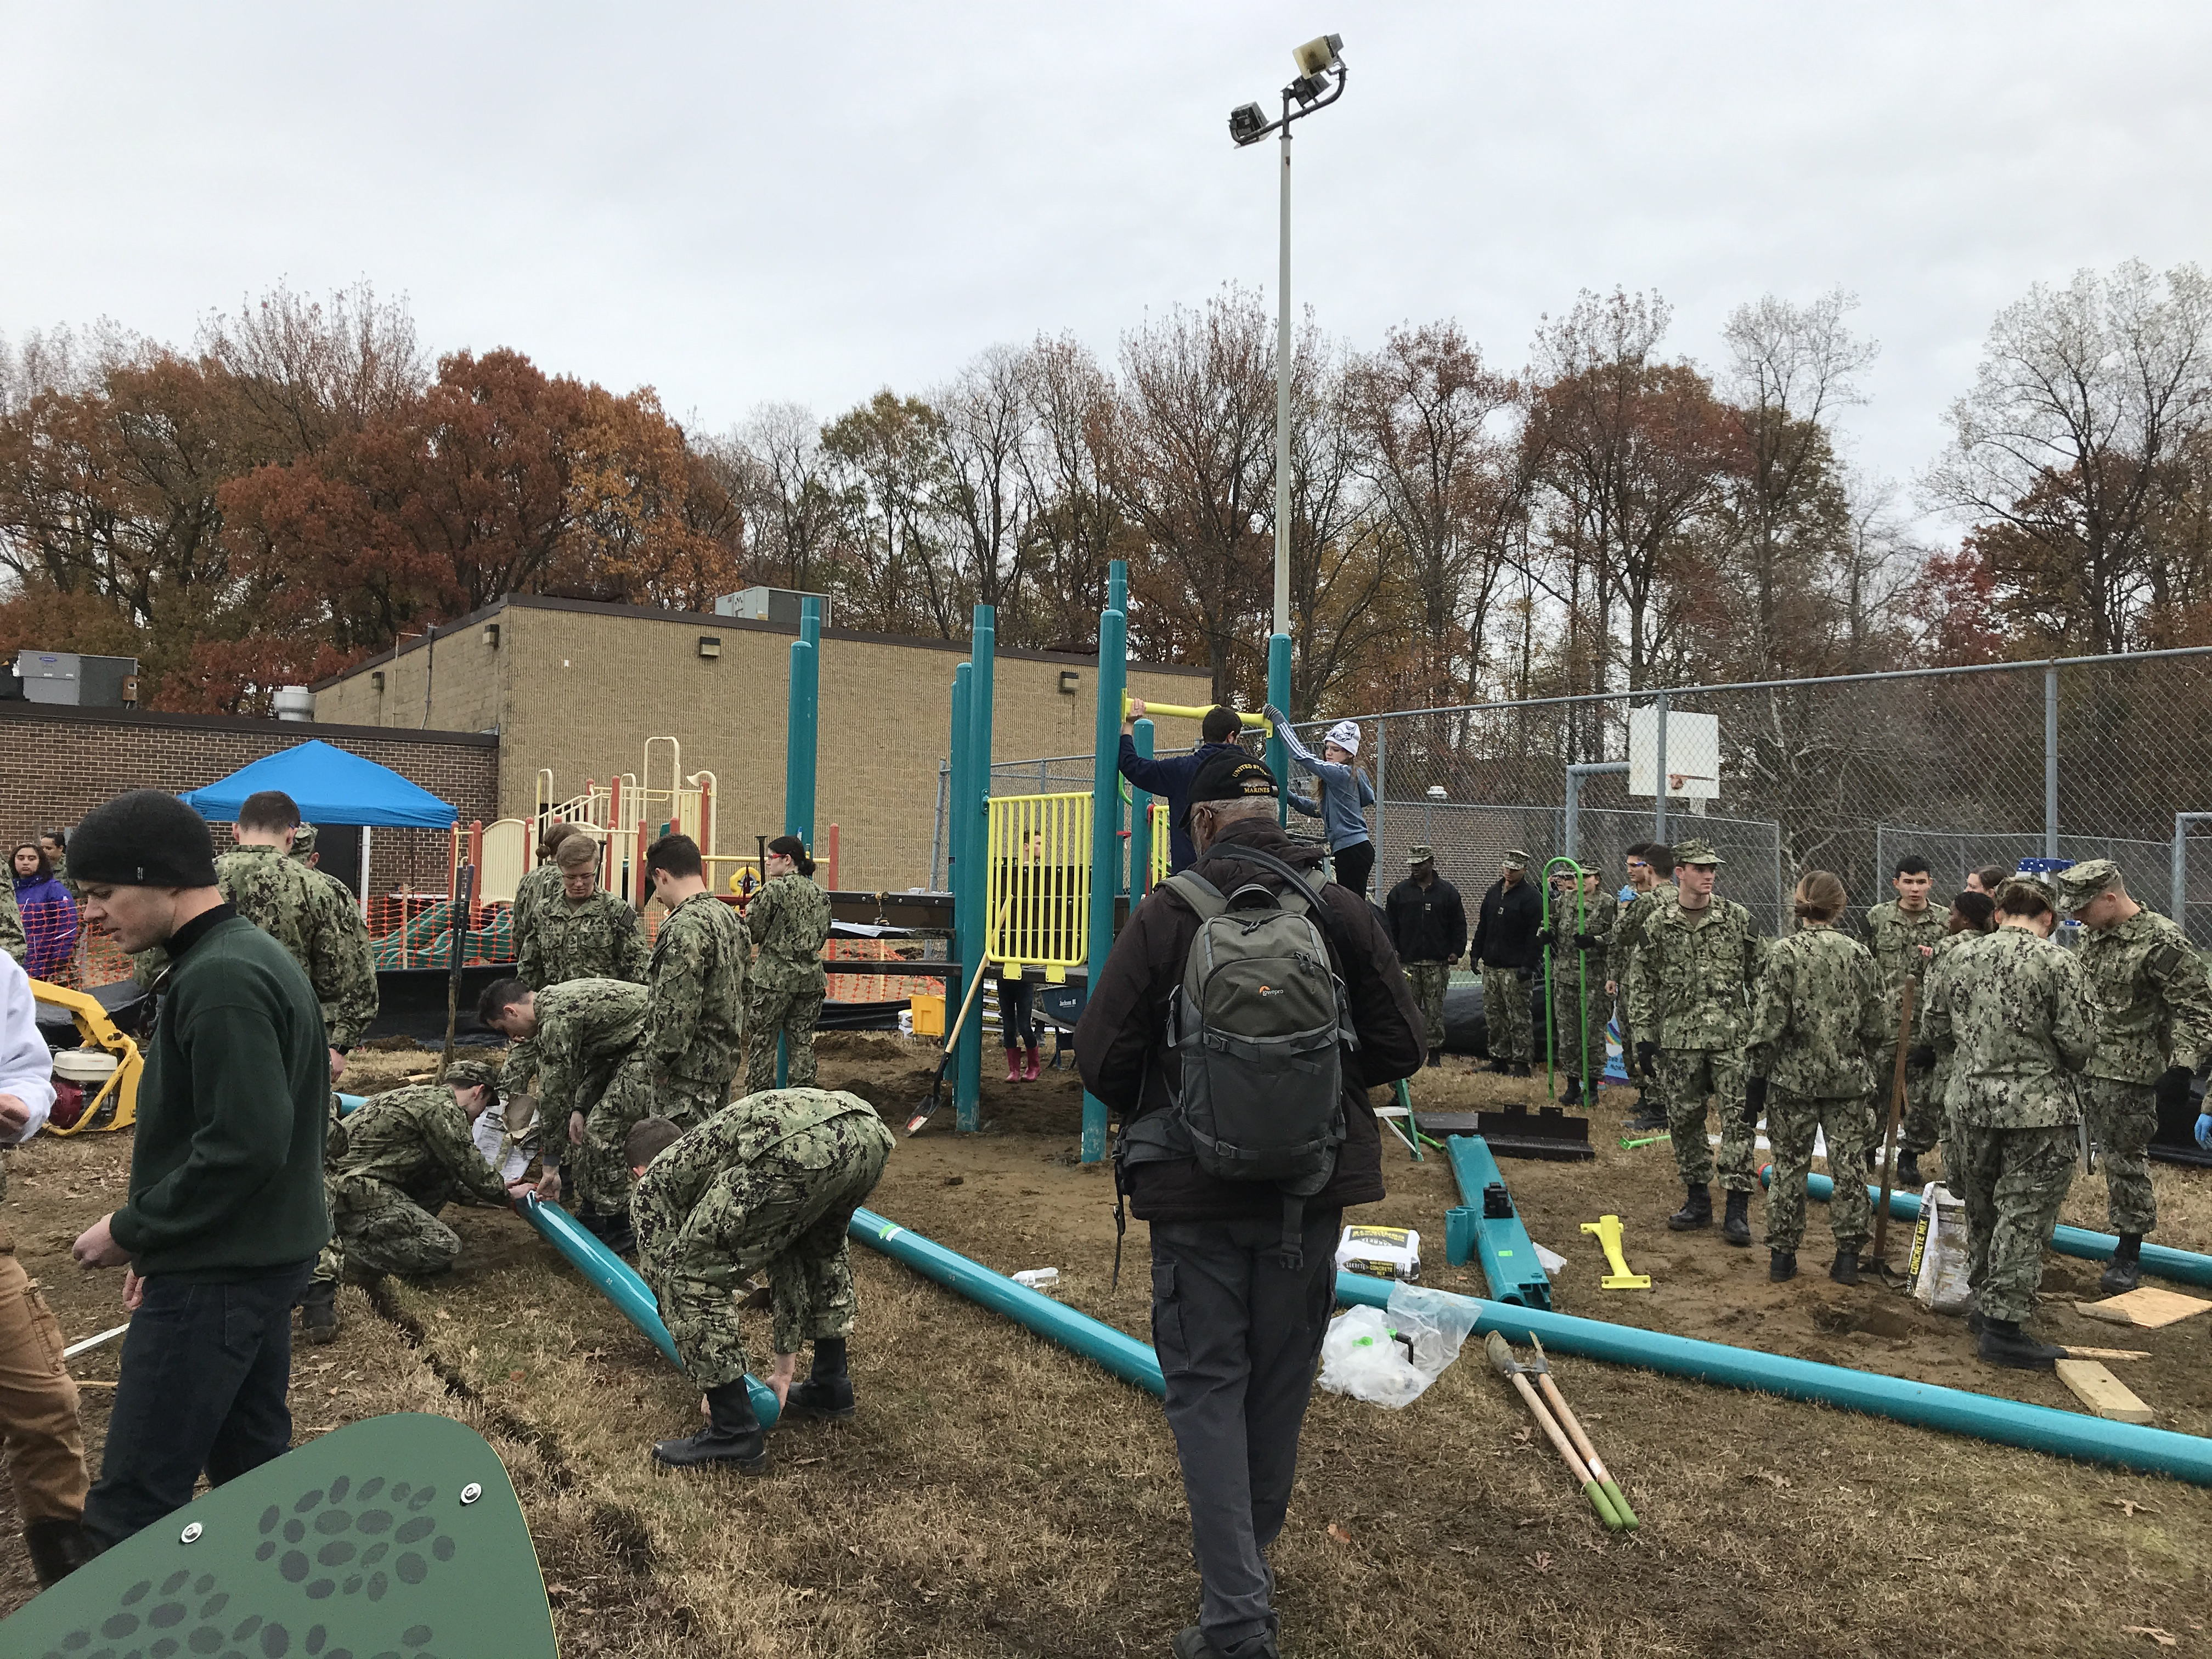 A group of uniformed Midshipmen on a playground building site.